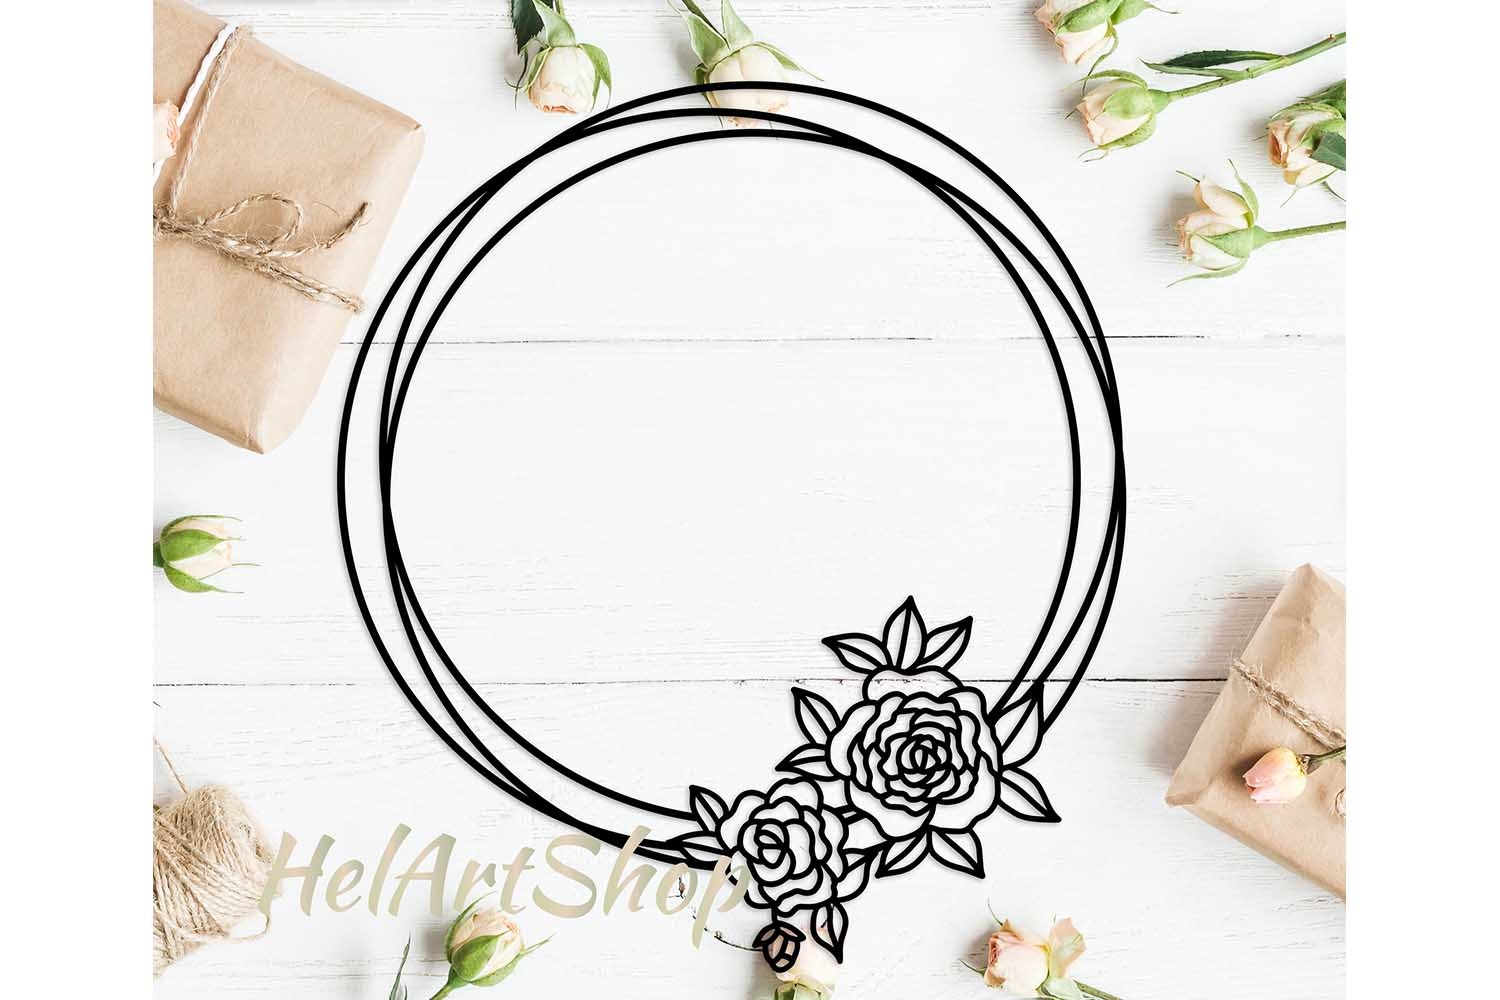 Flower Frame SVG, Flower Wreath svg, Wreath SVG file example image 1